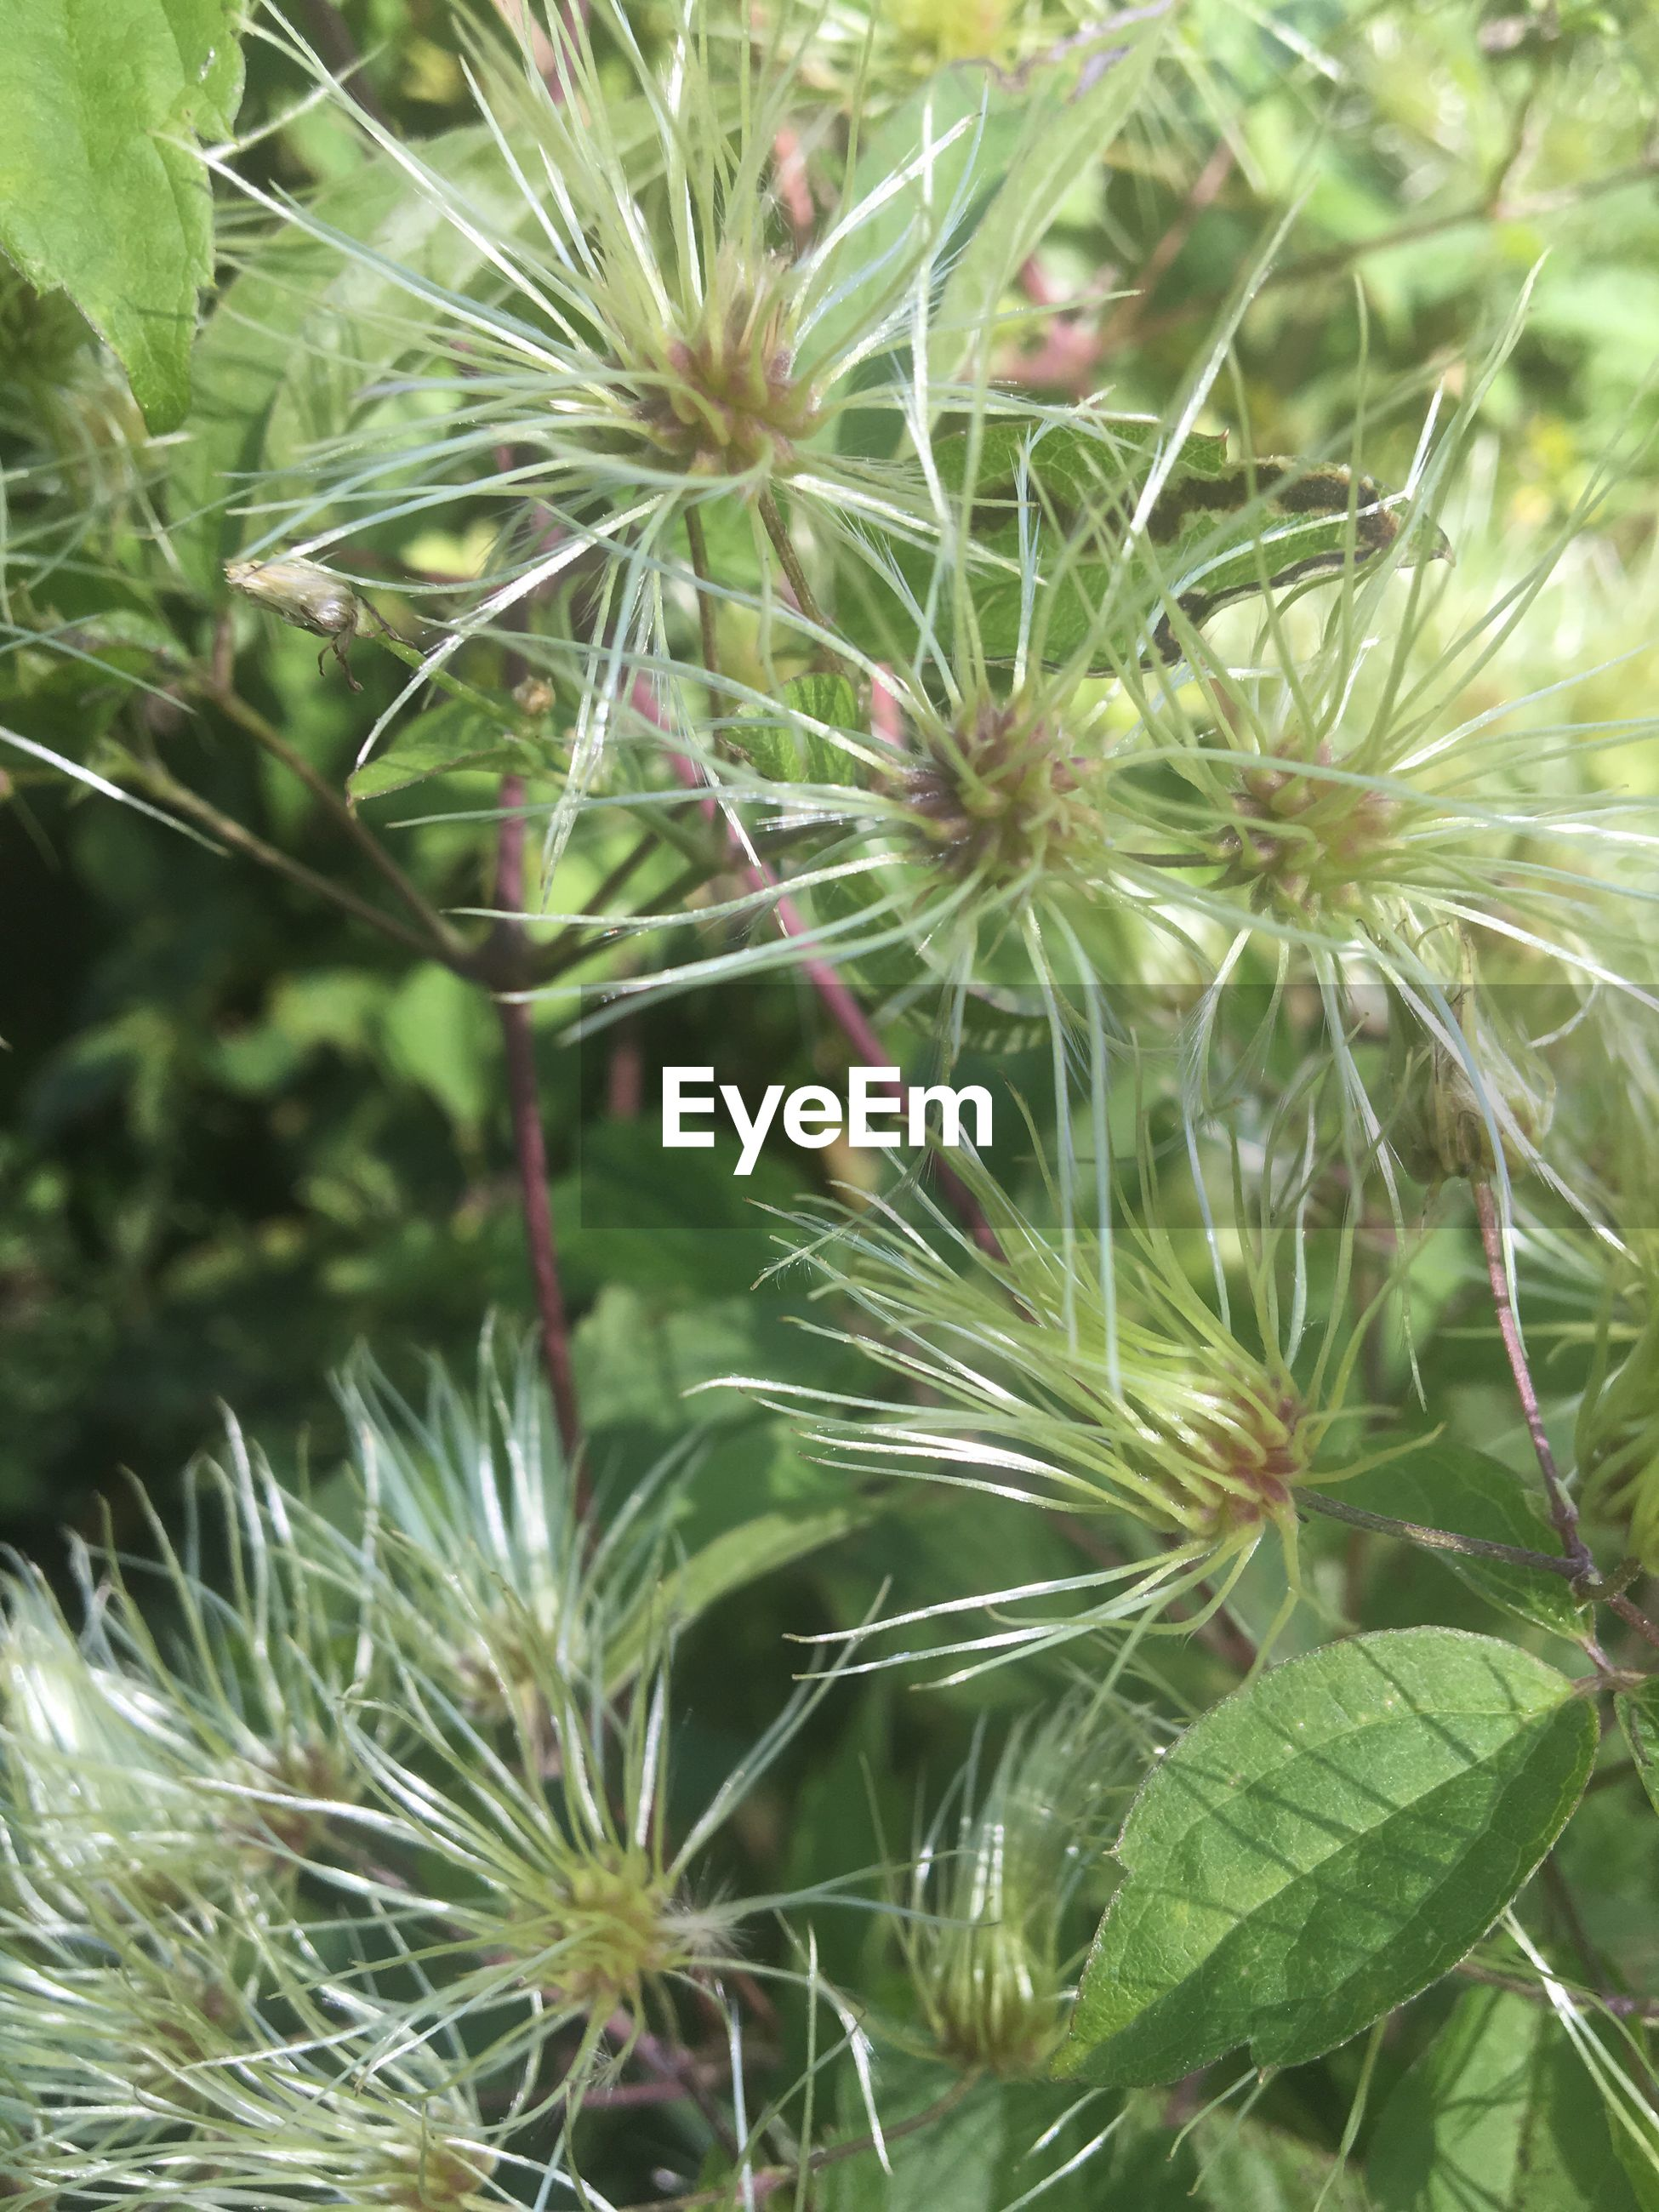 plant, growth, close-up, thorn, cactus, spiked, nature, freshness, fragility, sharp, beauty in nature, focus on foreground, flower, green color, selective focus, day, green, botany, needle - plant part, spiky, wildflower, uncultivated, outdoors, growing, flower head, springtime, softness, in bloom